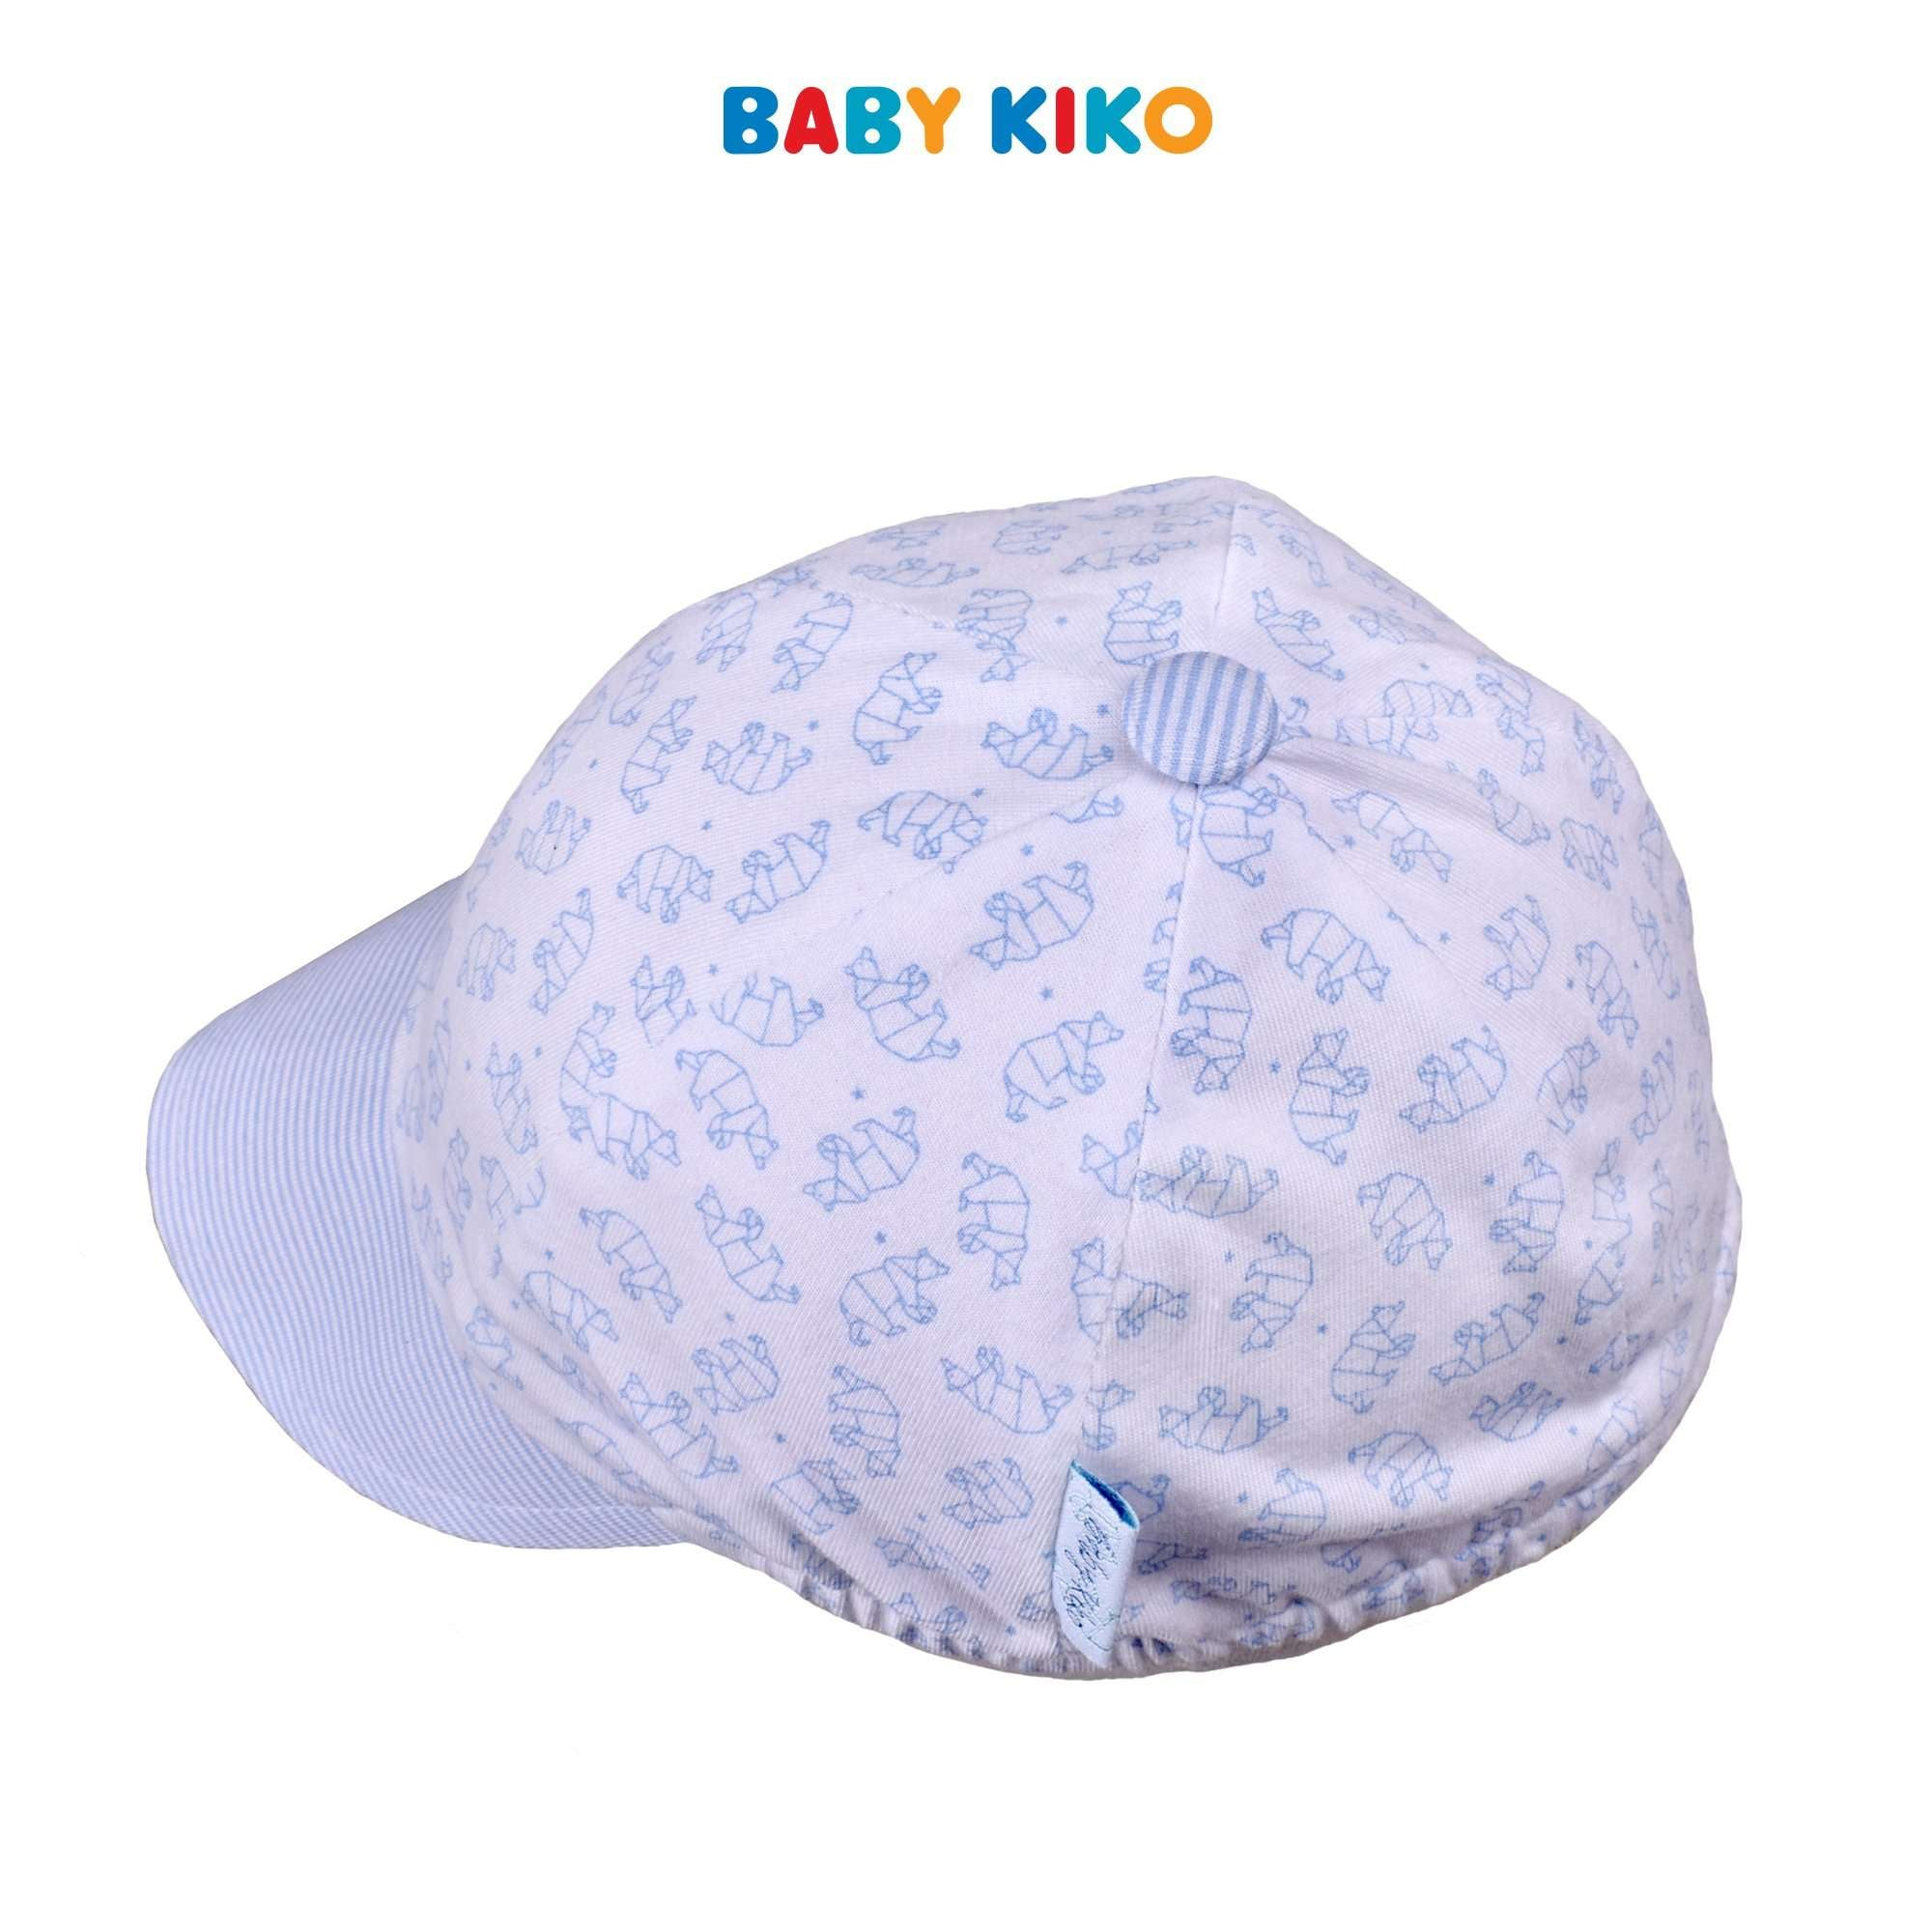 Baby KIKO Infant Boy Cap-White 310182-711 : Buy Baby KIKO online at CMG.MY